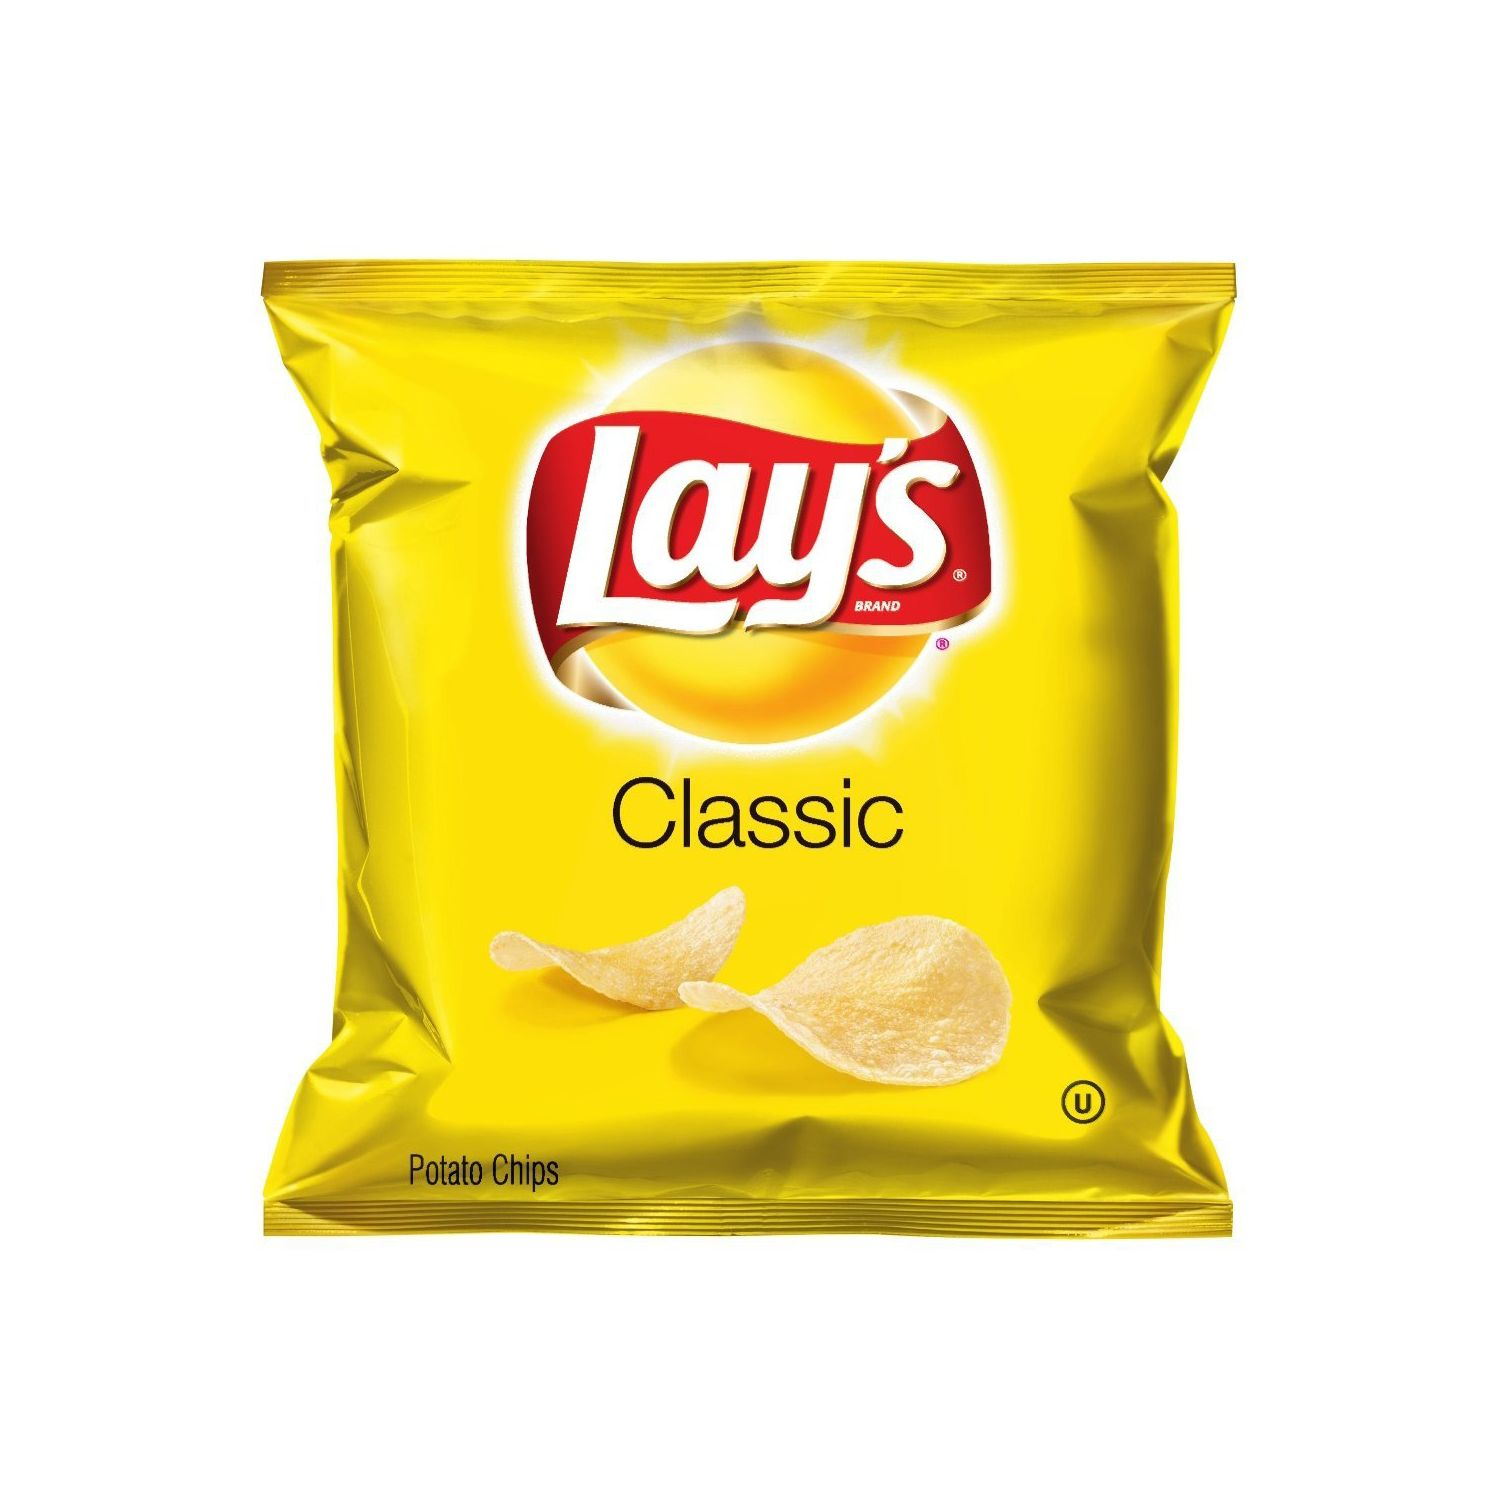 1 Oz Bag Of Lays Potato Chips Nutrition Facts - Nutrition ...